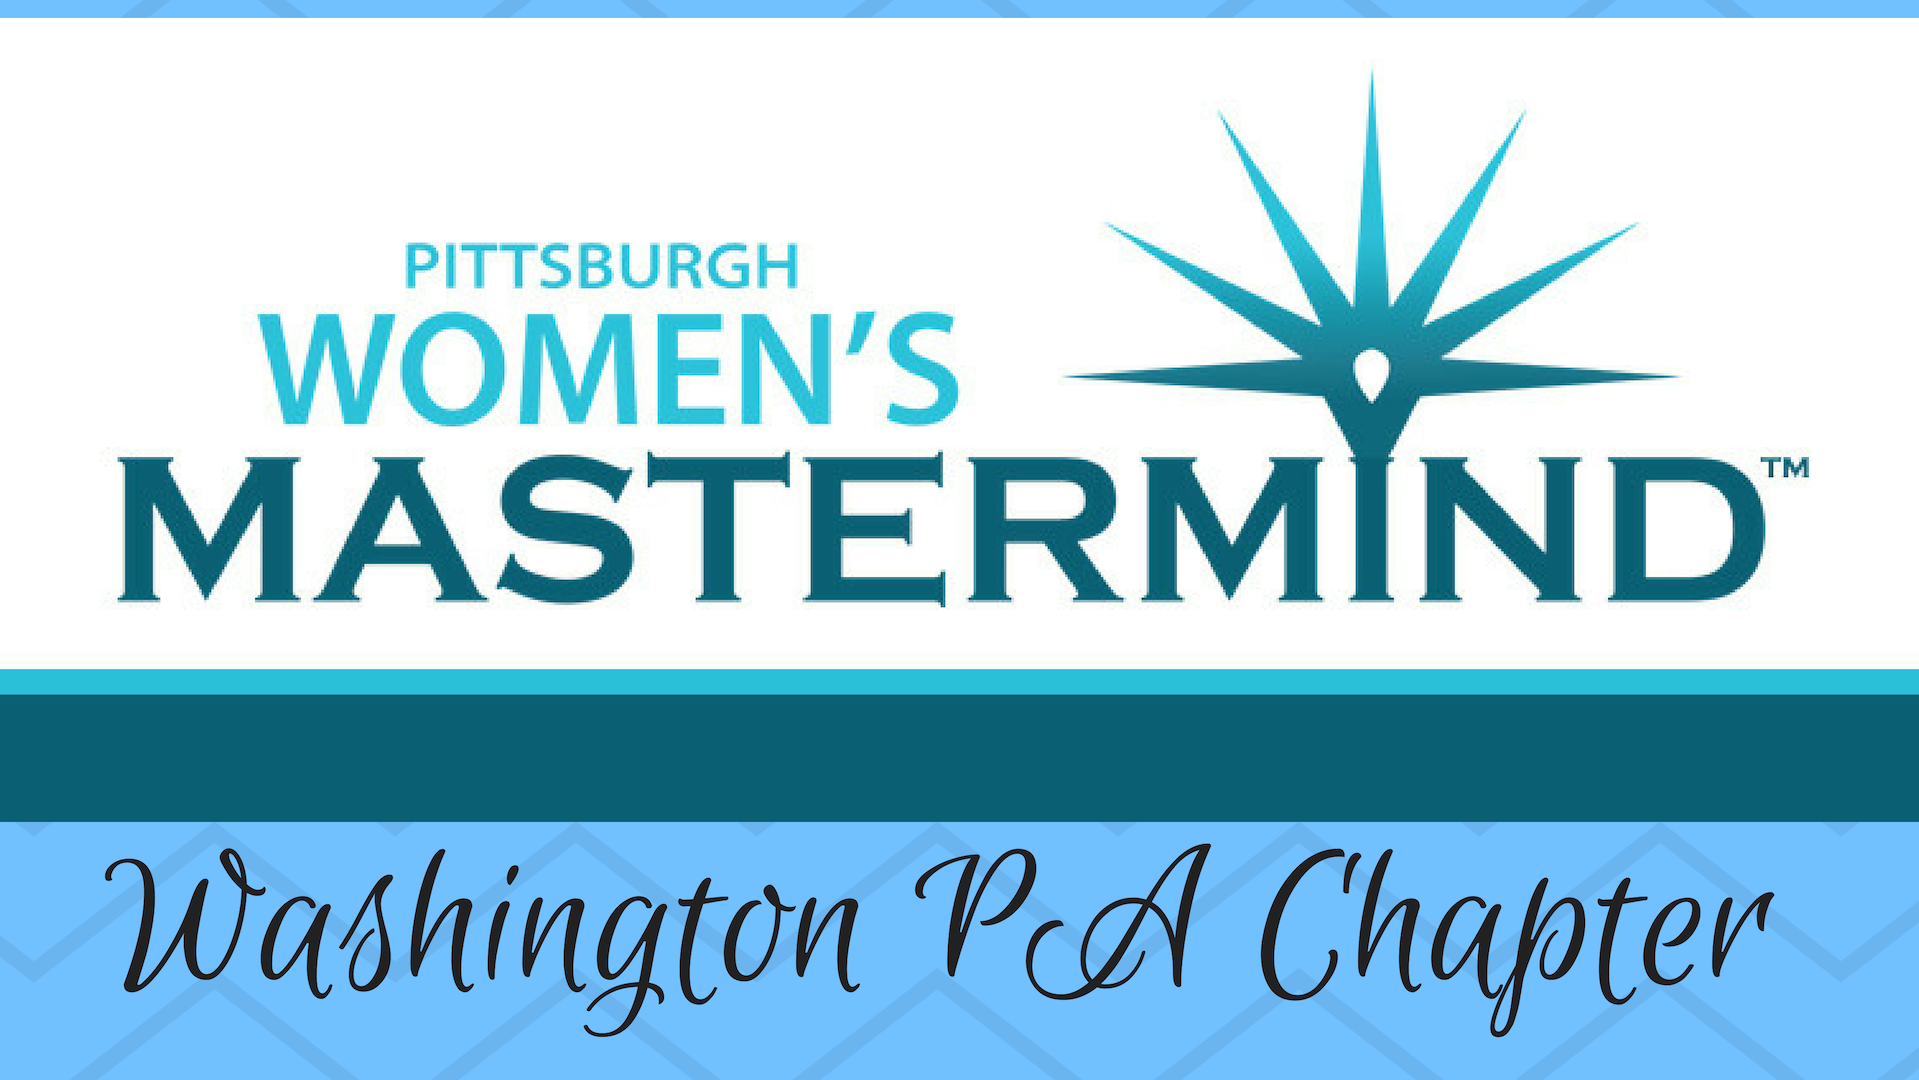 Pittsburgh Women's Mastermind for Entrepreneurs: Washington